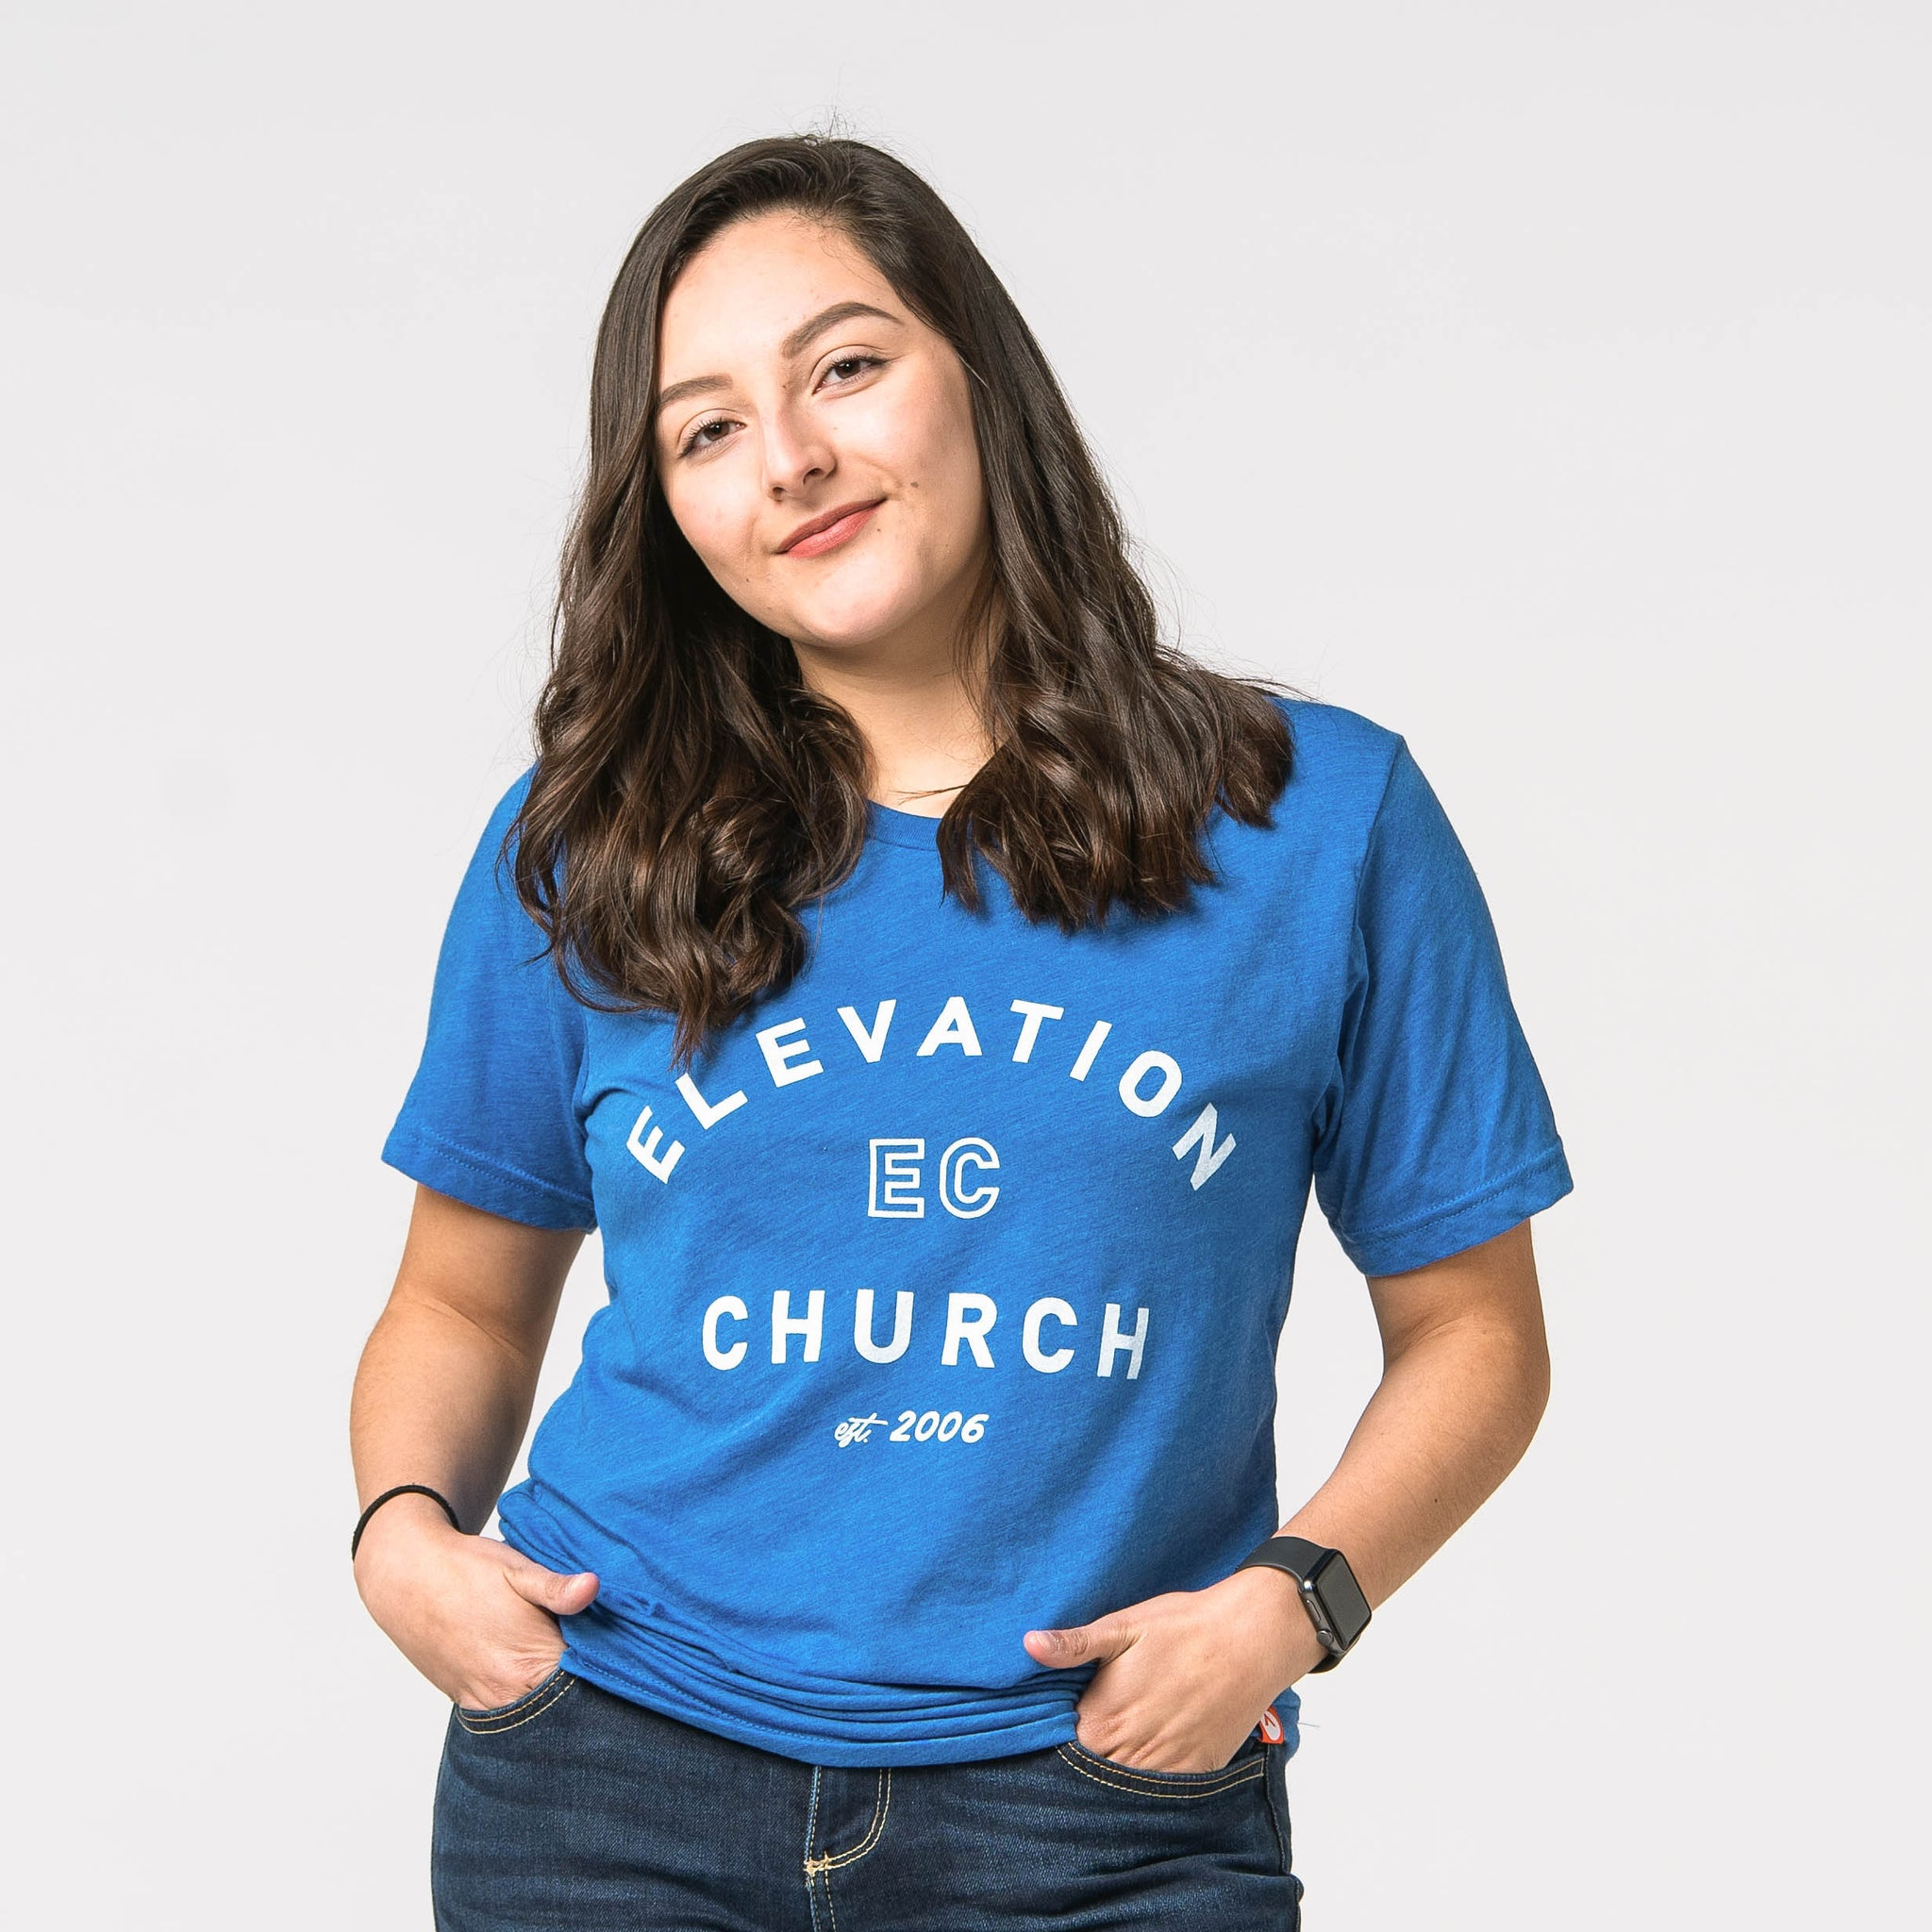 Elevation Church Royal Blue short sleeve tee